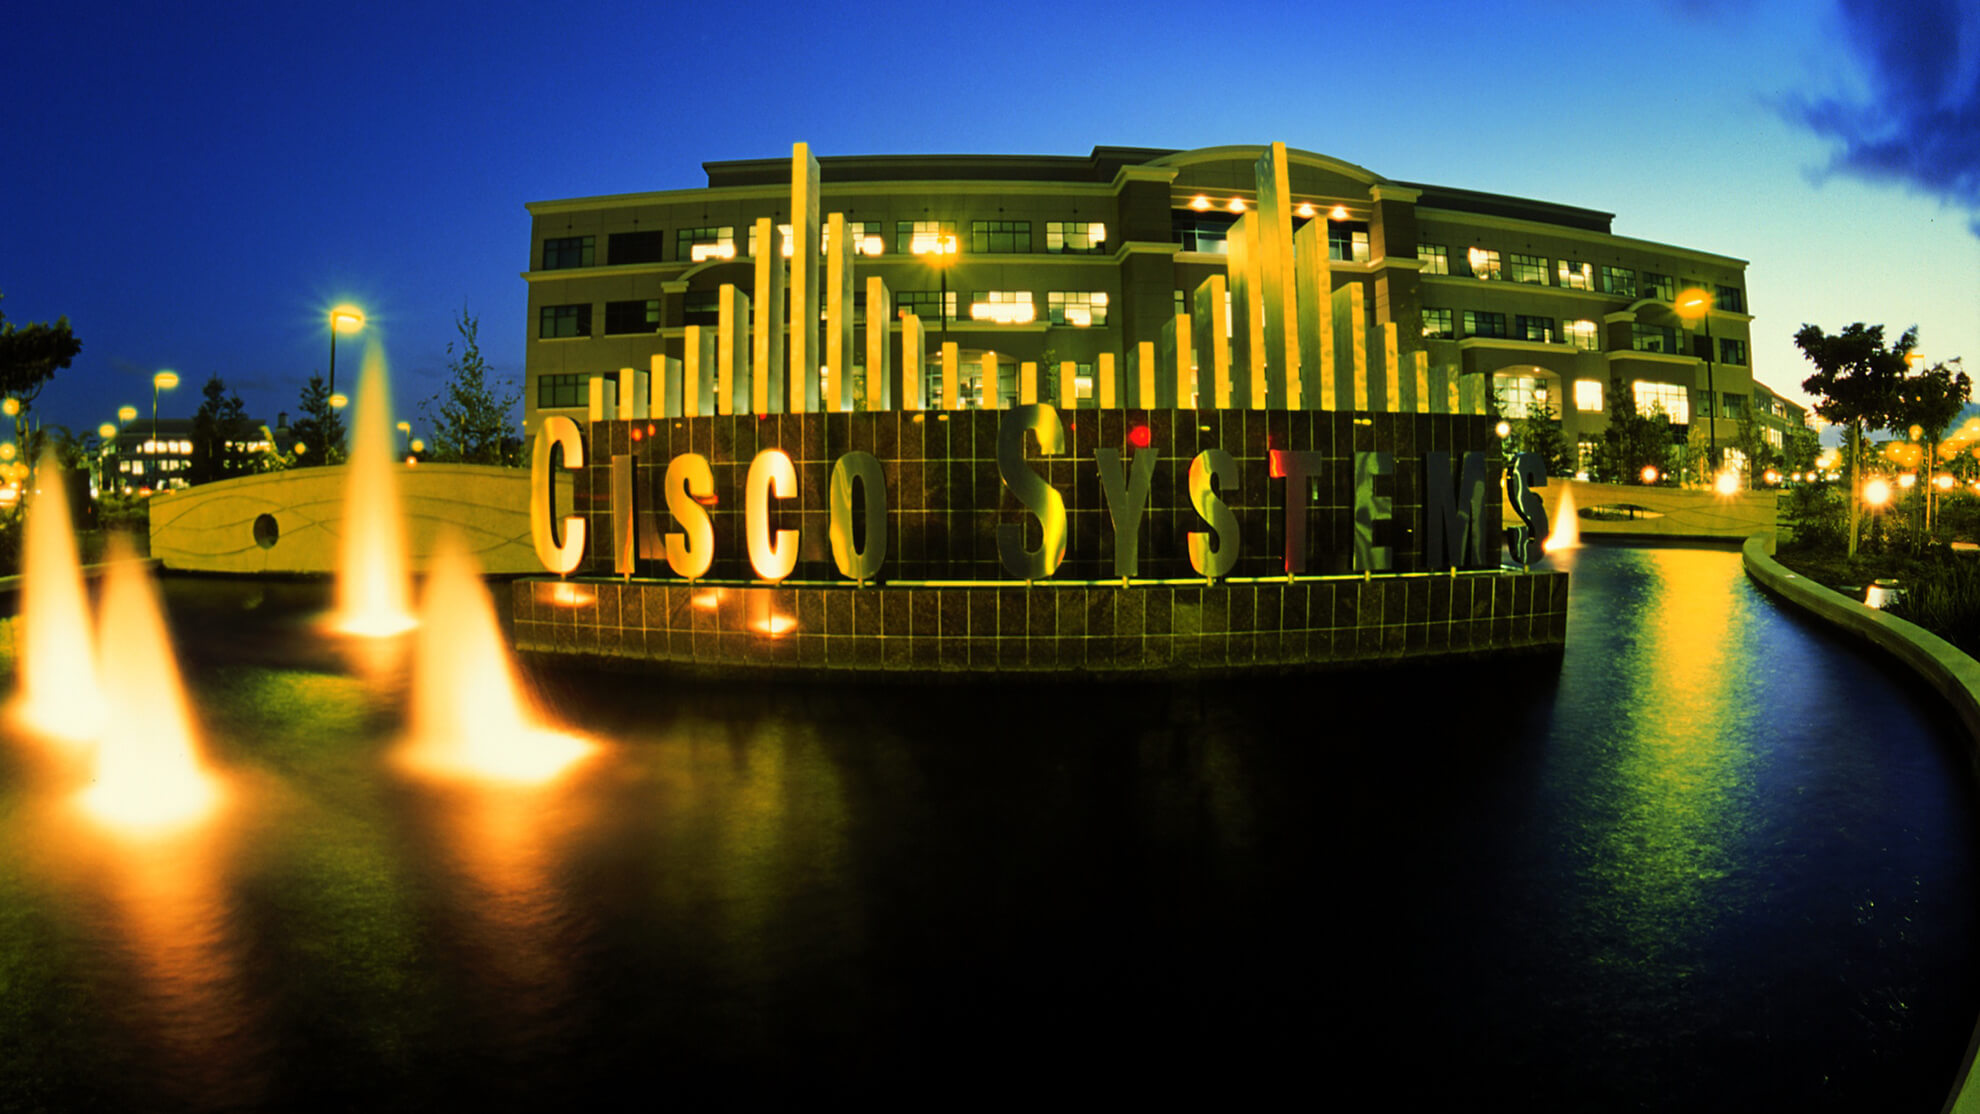 cisco industrial iot cisco can drive its industrial iot business Cisco can drive its industrial IoT business forward in Australia cisco iot